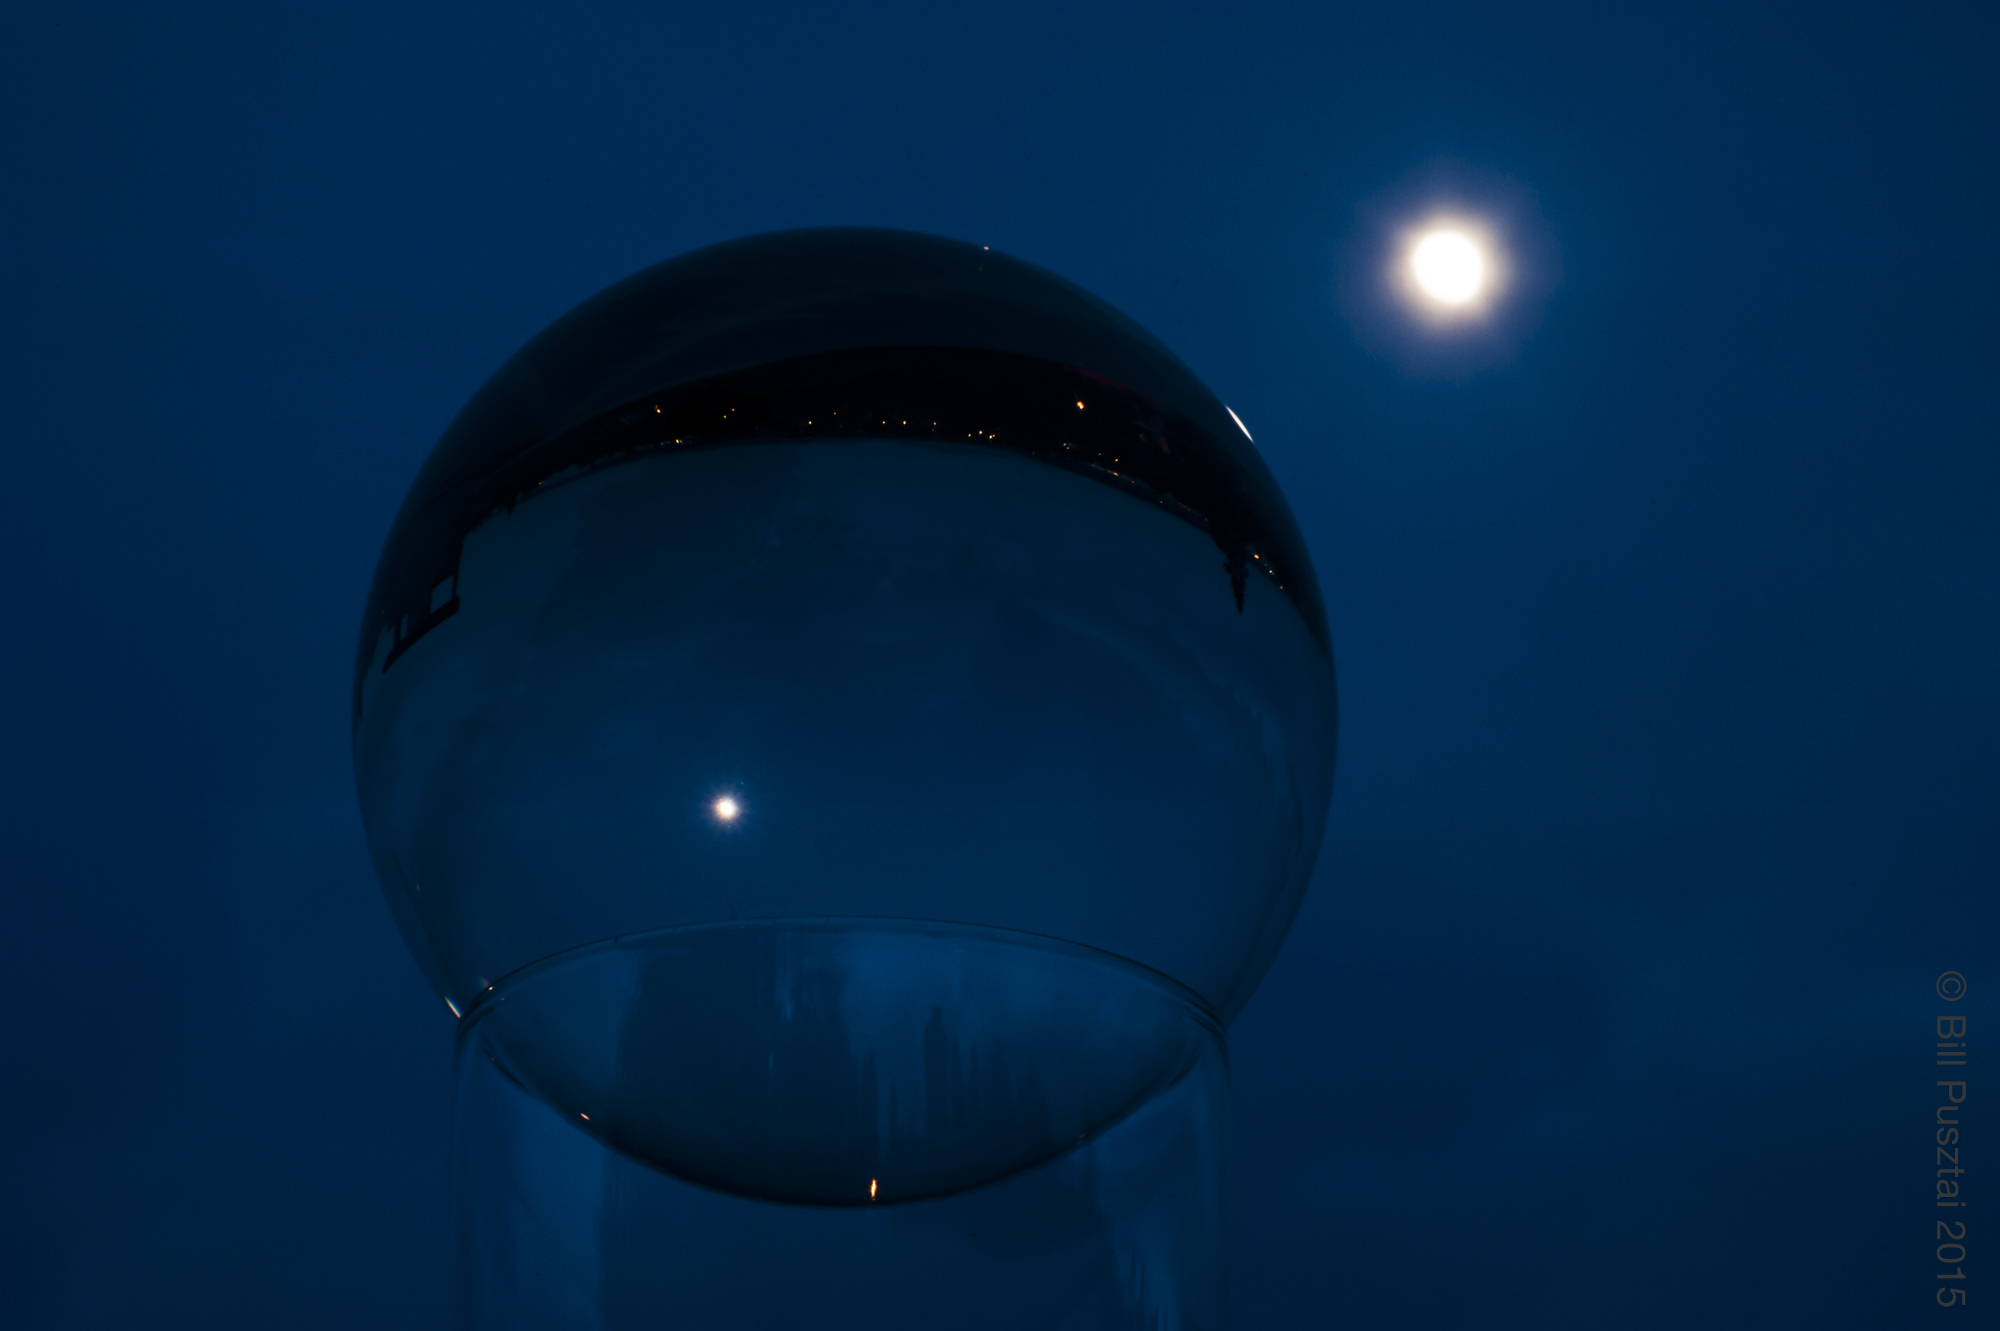 Full moon, orb.